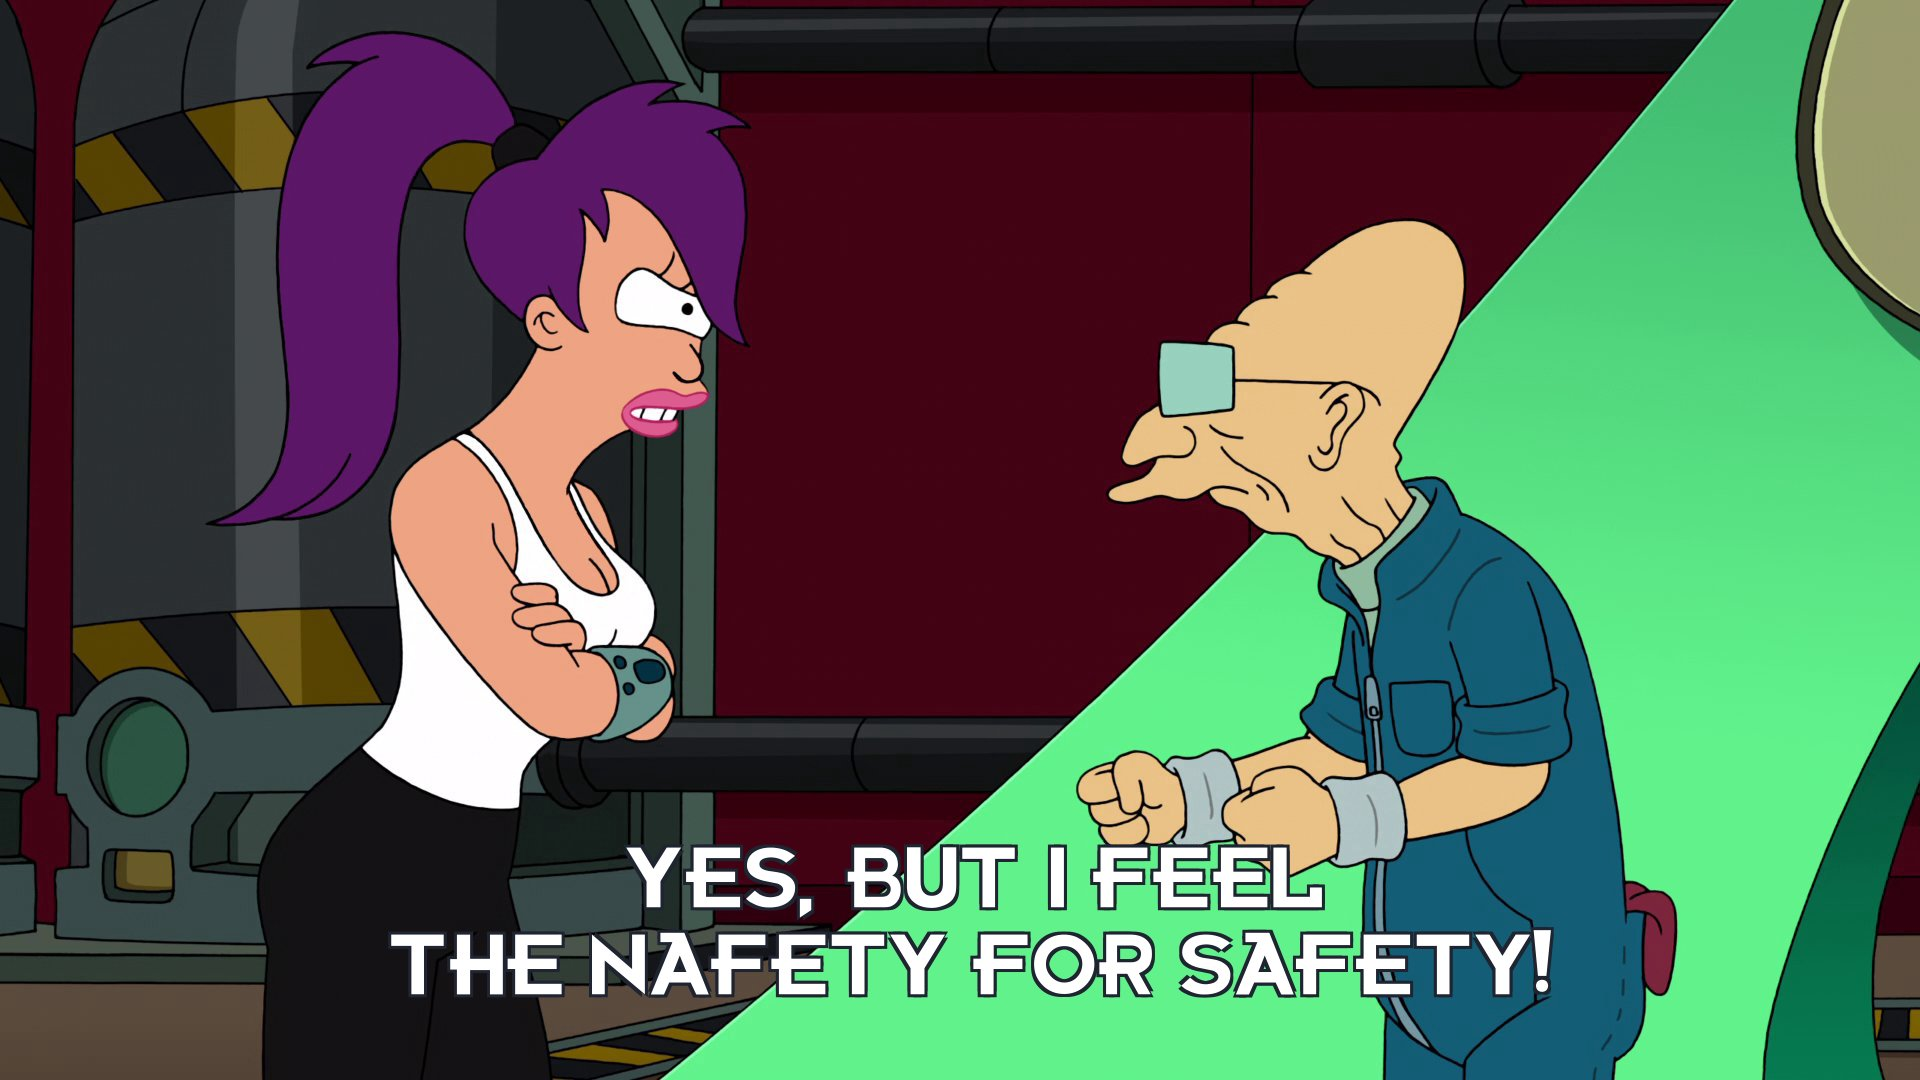 Turanga Leela: Yes, but I feel the nafety for safety!